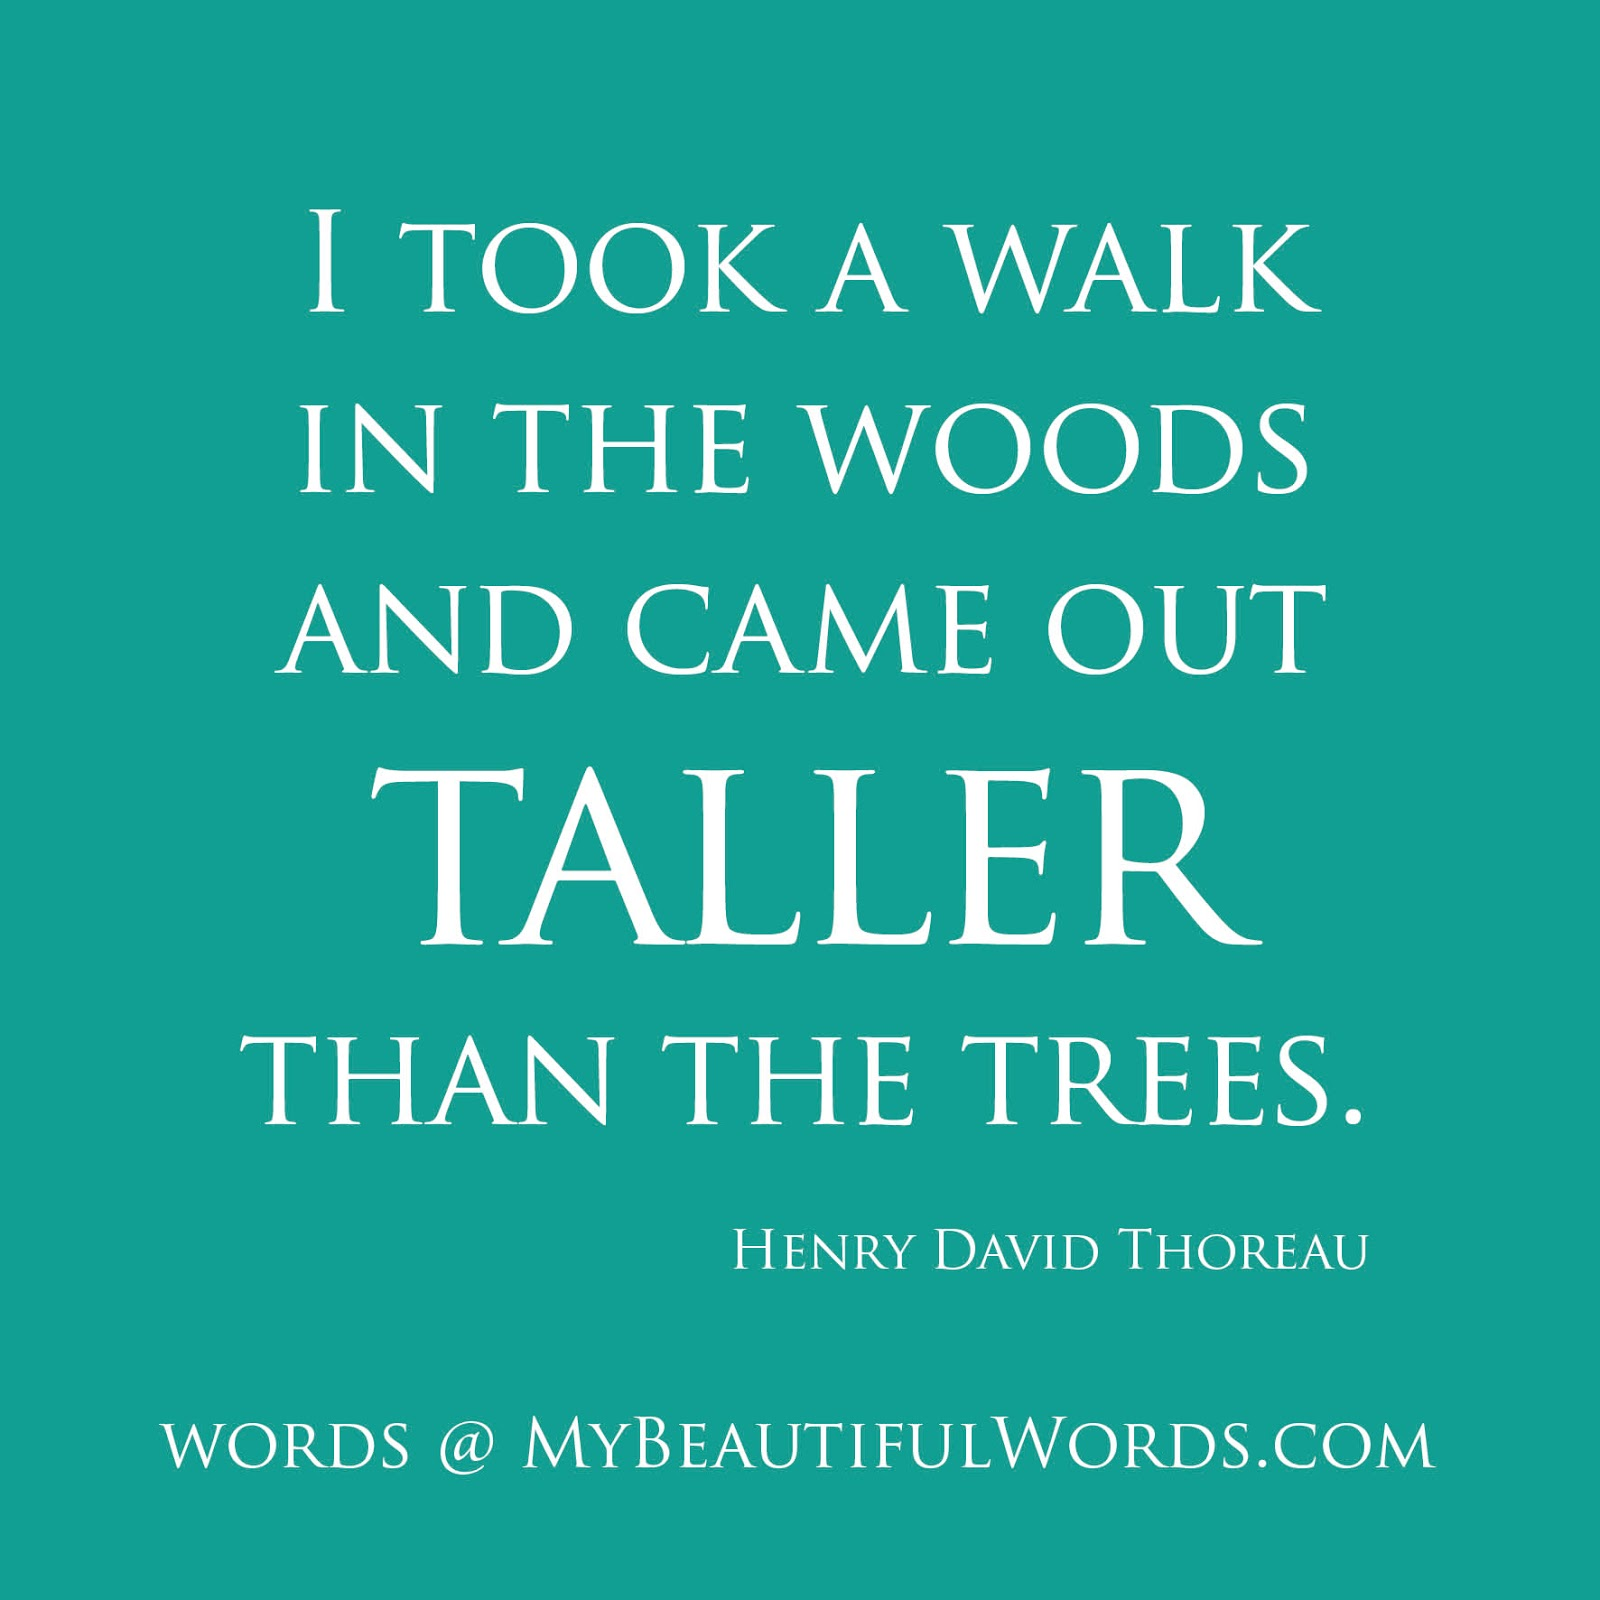 Maya Angelou Quote People Will For Get: Into The Woods Quotes. QuotesGram